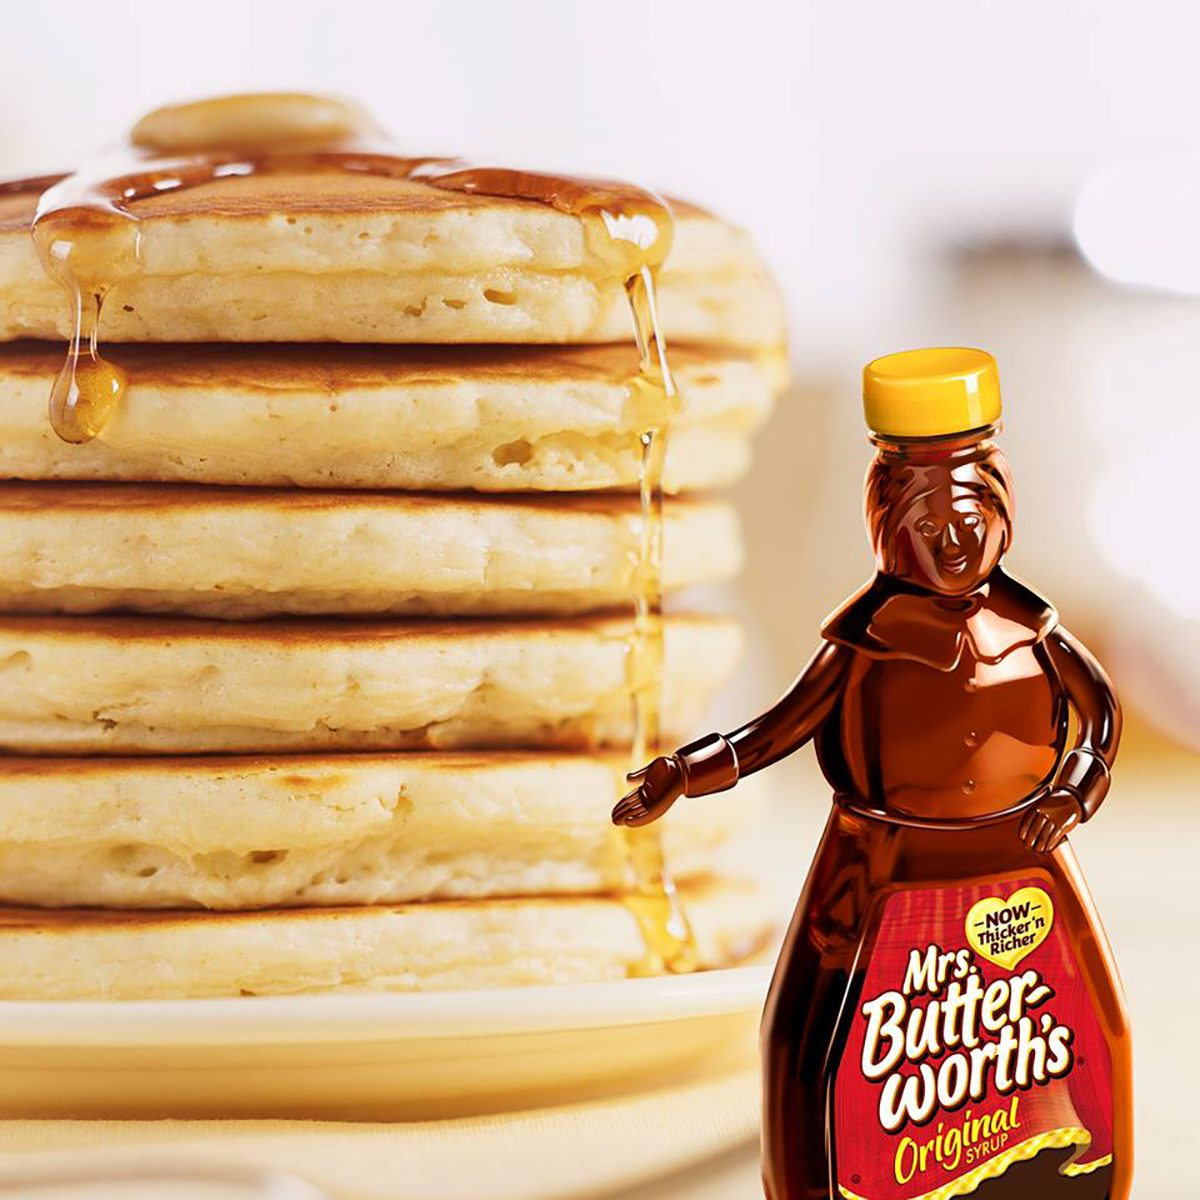 Mrs. Butterworth's syrup with pancakes